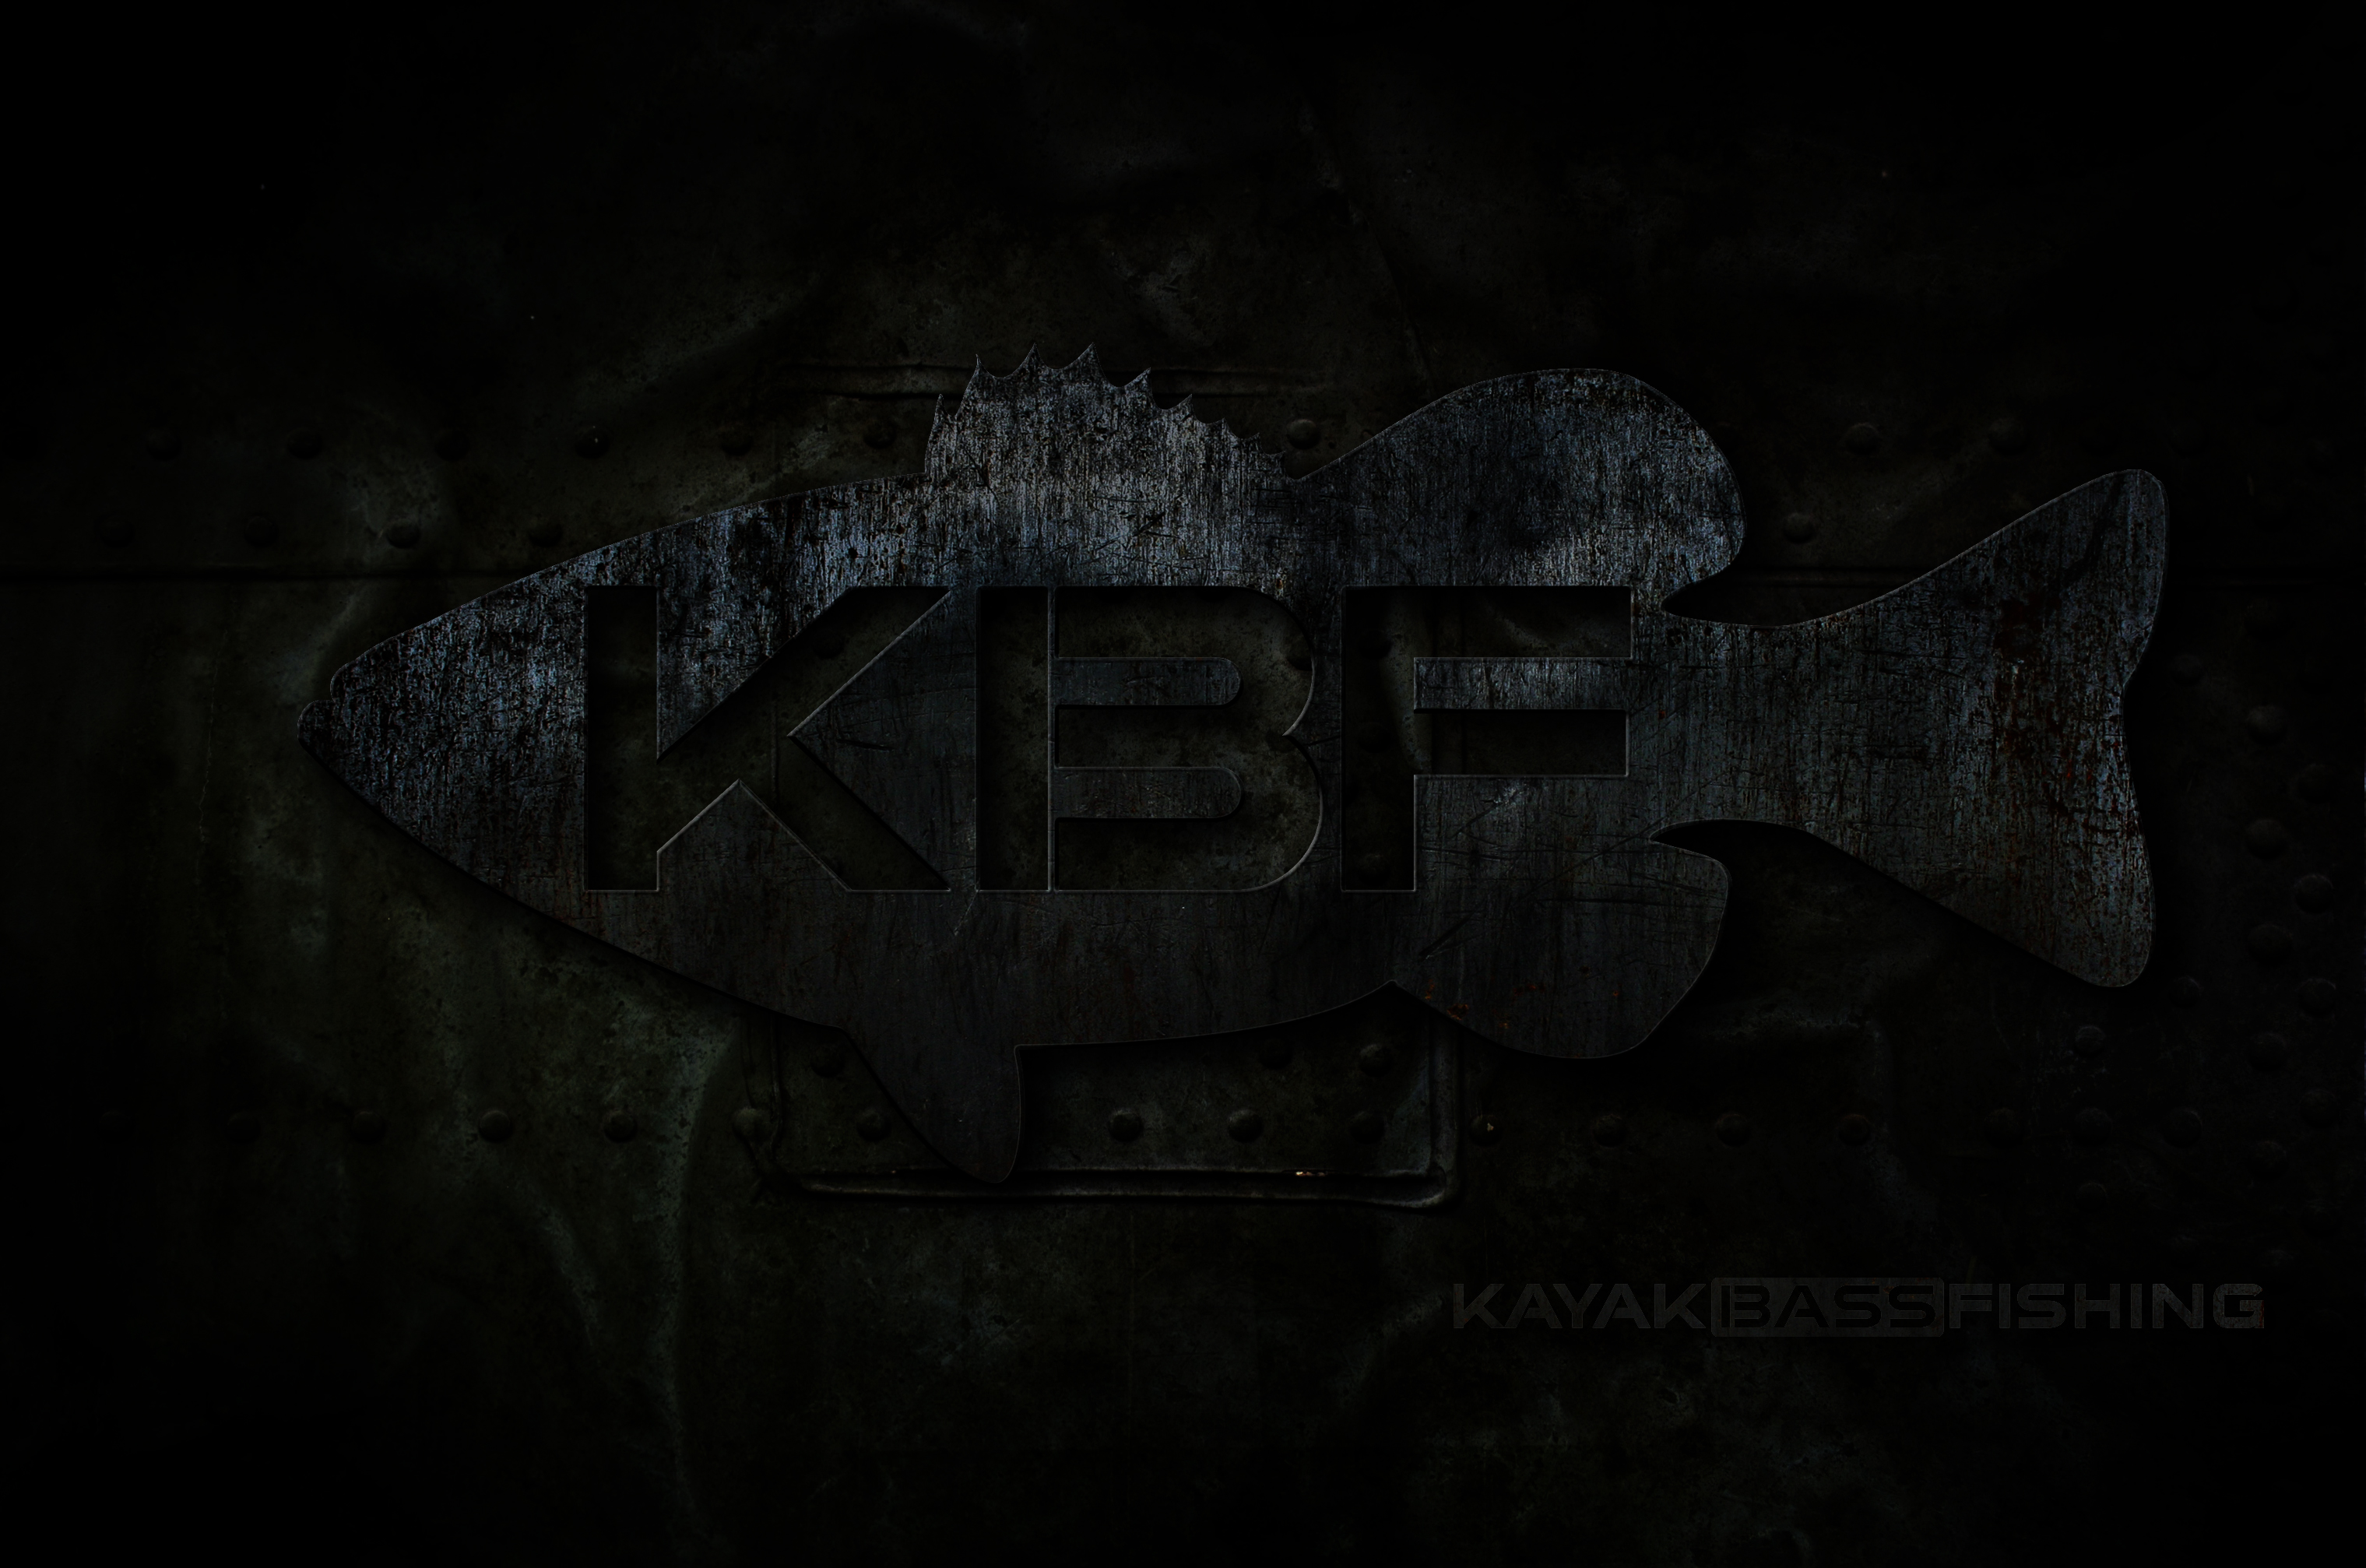 Kayak Bass Fishing large wallpaper